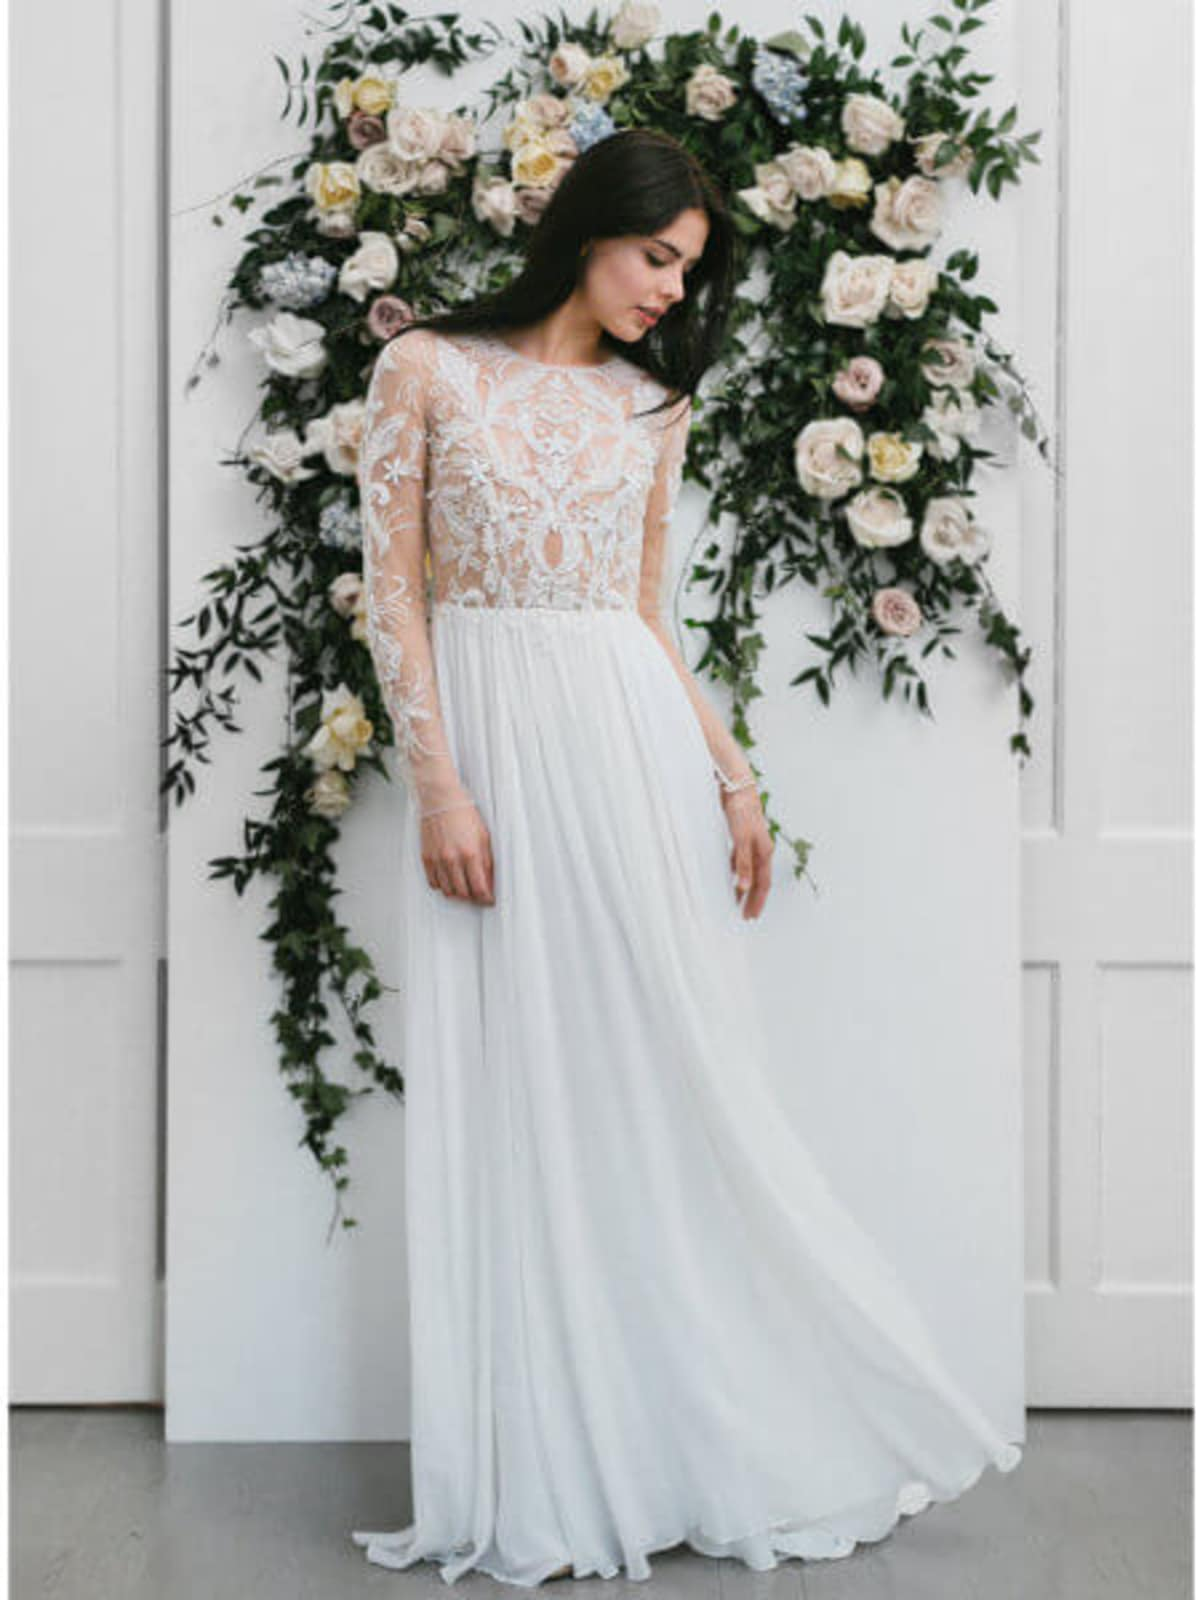 Boho bridal shop picks Uptown Dallas for first North Texas location ...